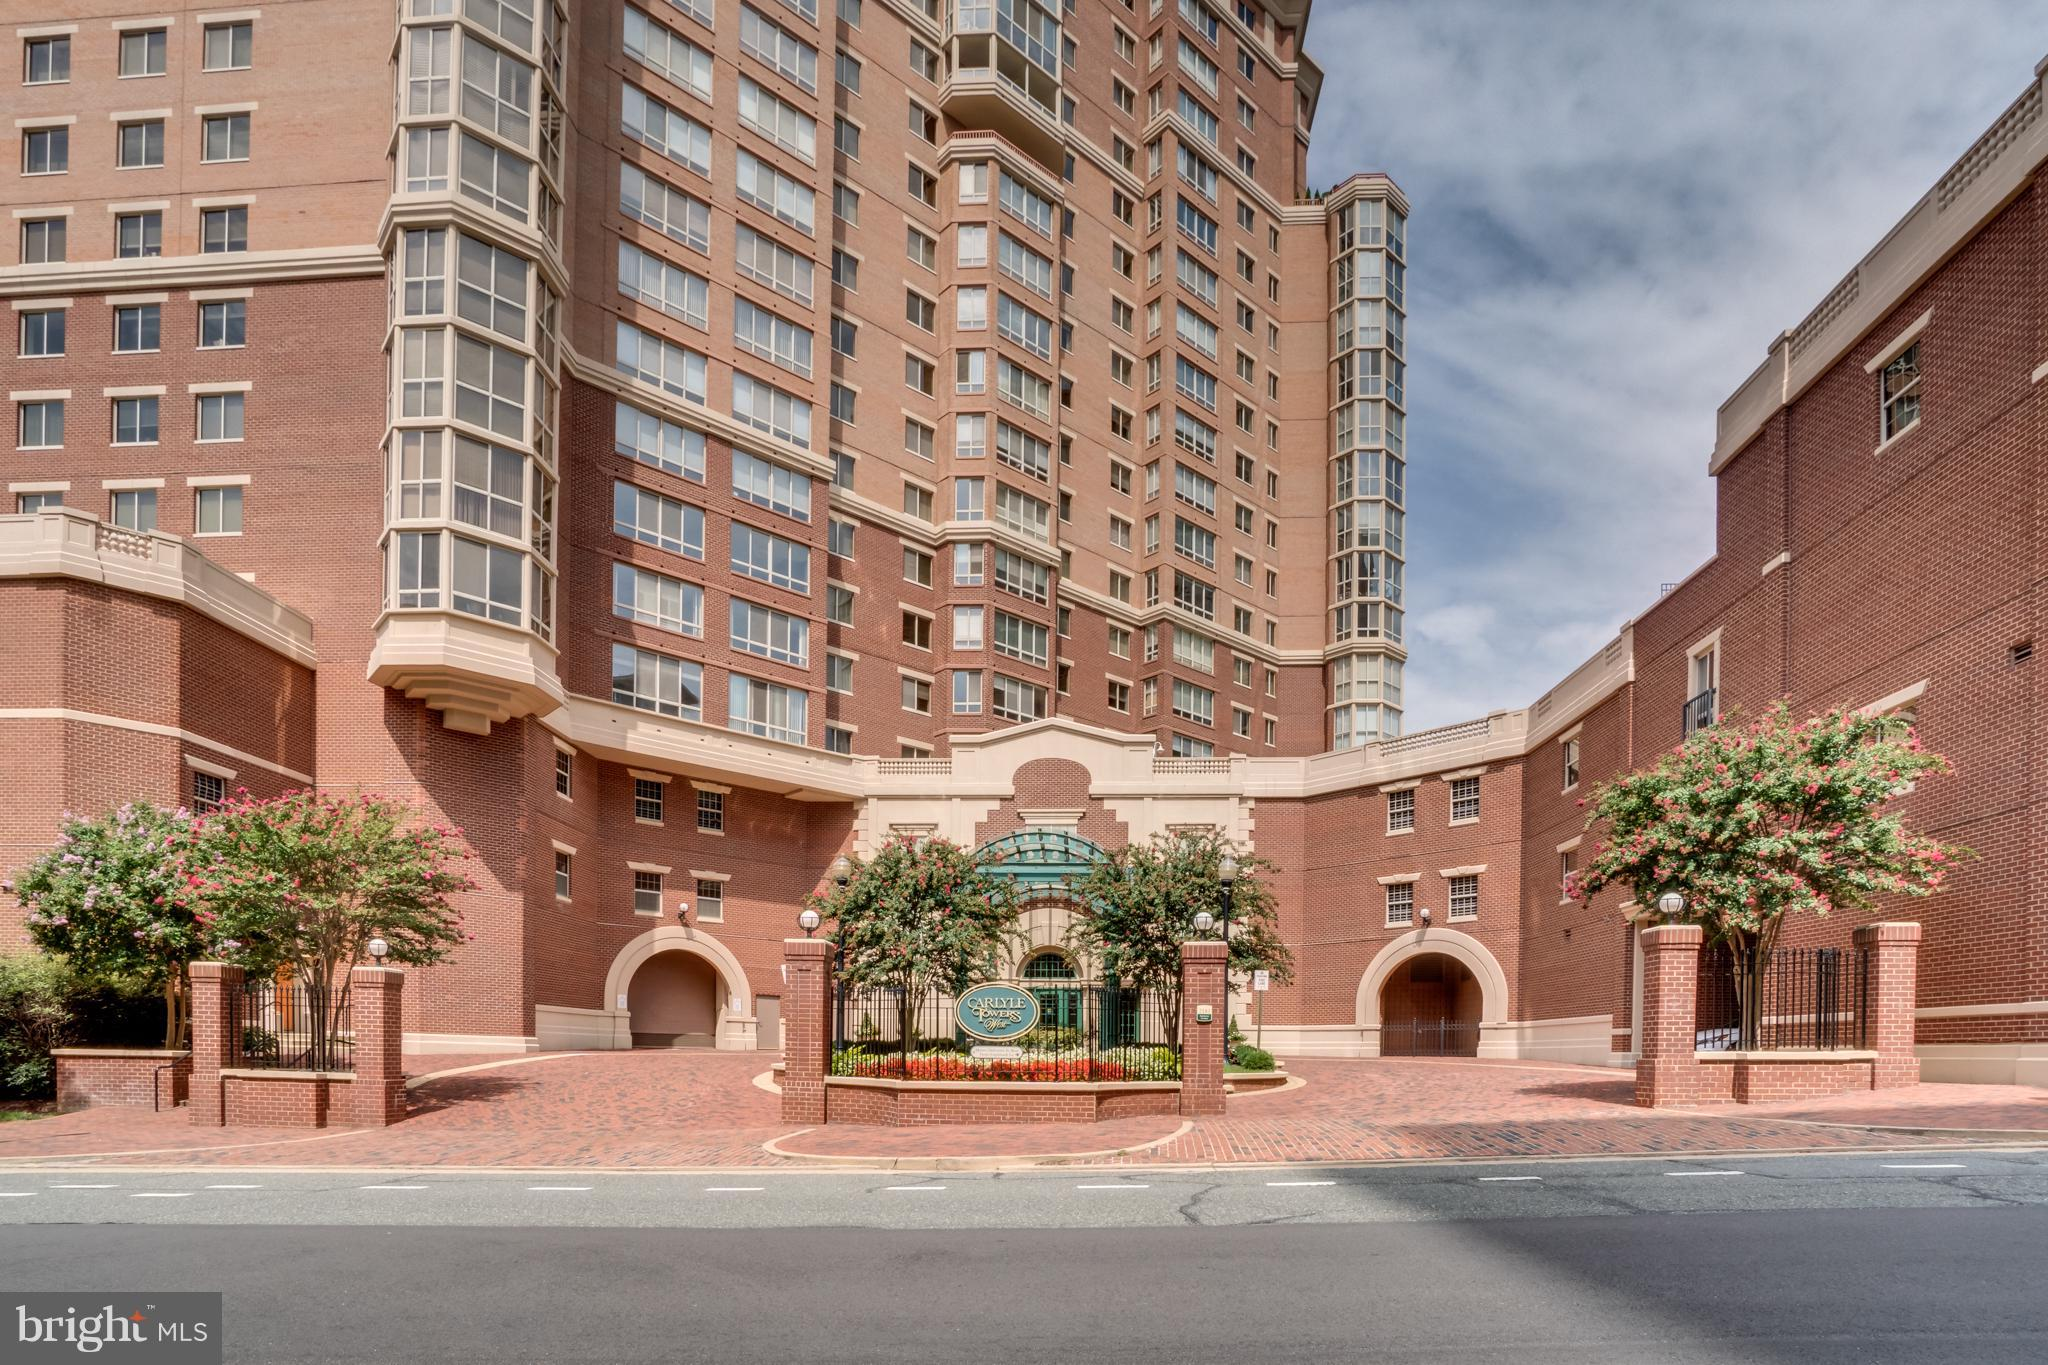 OPEN HOUSE SUNDAY 2/17 1-4PM. You're going to love this property! Carlyle Tower Condo - Luxury, Location and a lifestyle in Alexandria! Bright and open floor plan w/ 1,605 sqft of renovated space + an enclosed balcony. Large private MBR suite an updated luxe bath and 4 closets. Updated EIK with SS appliances, Pergo floors, Lg. separate DR, open LR w/ FP and full wall of built-ins opens to the balcony. Hardwoods and carpet. Close to METRO, Whole Foods, Amazon HQ2, & much more!